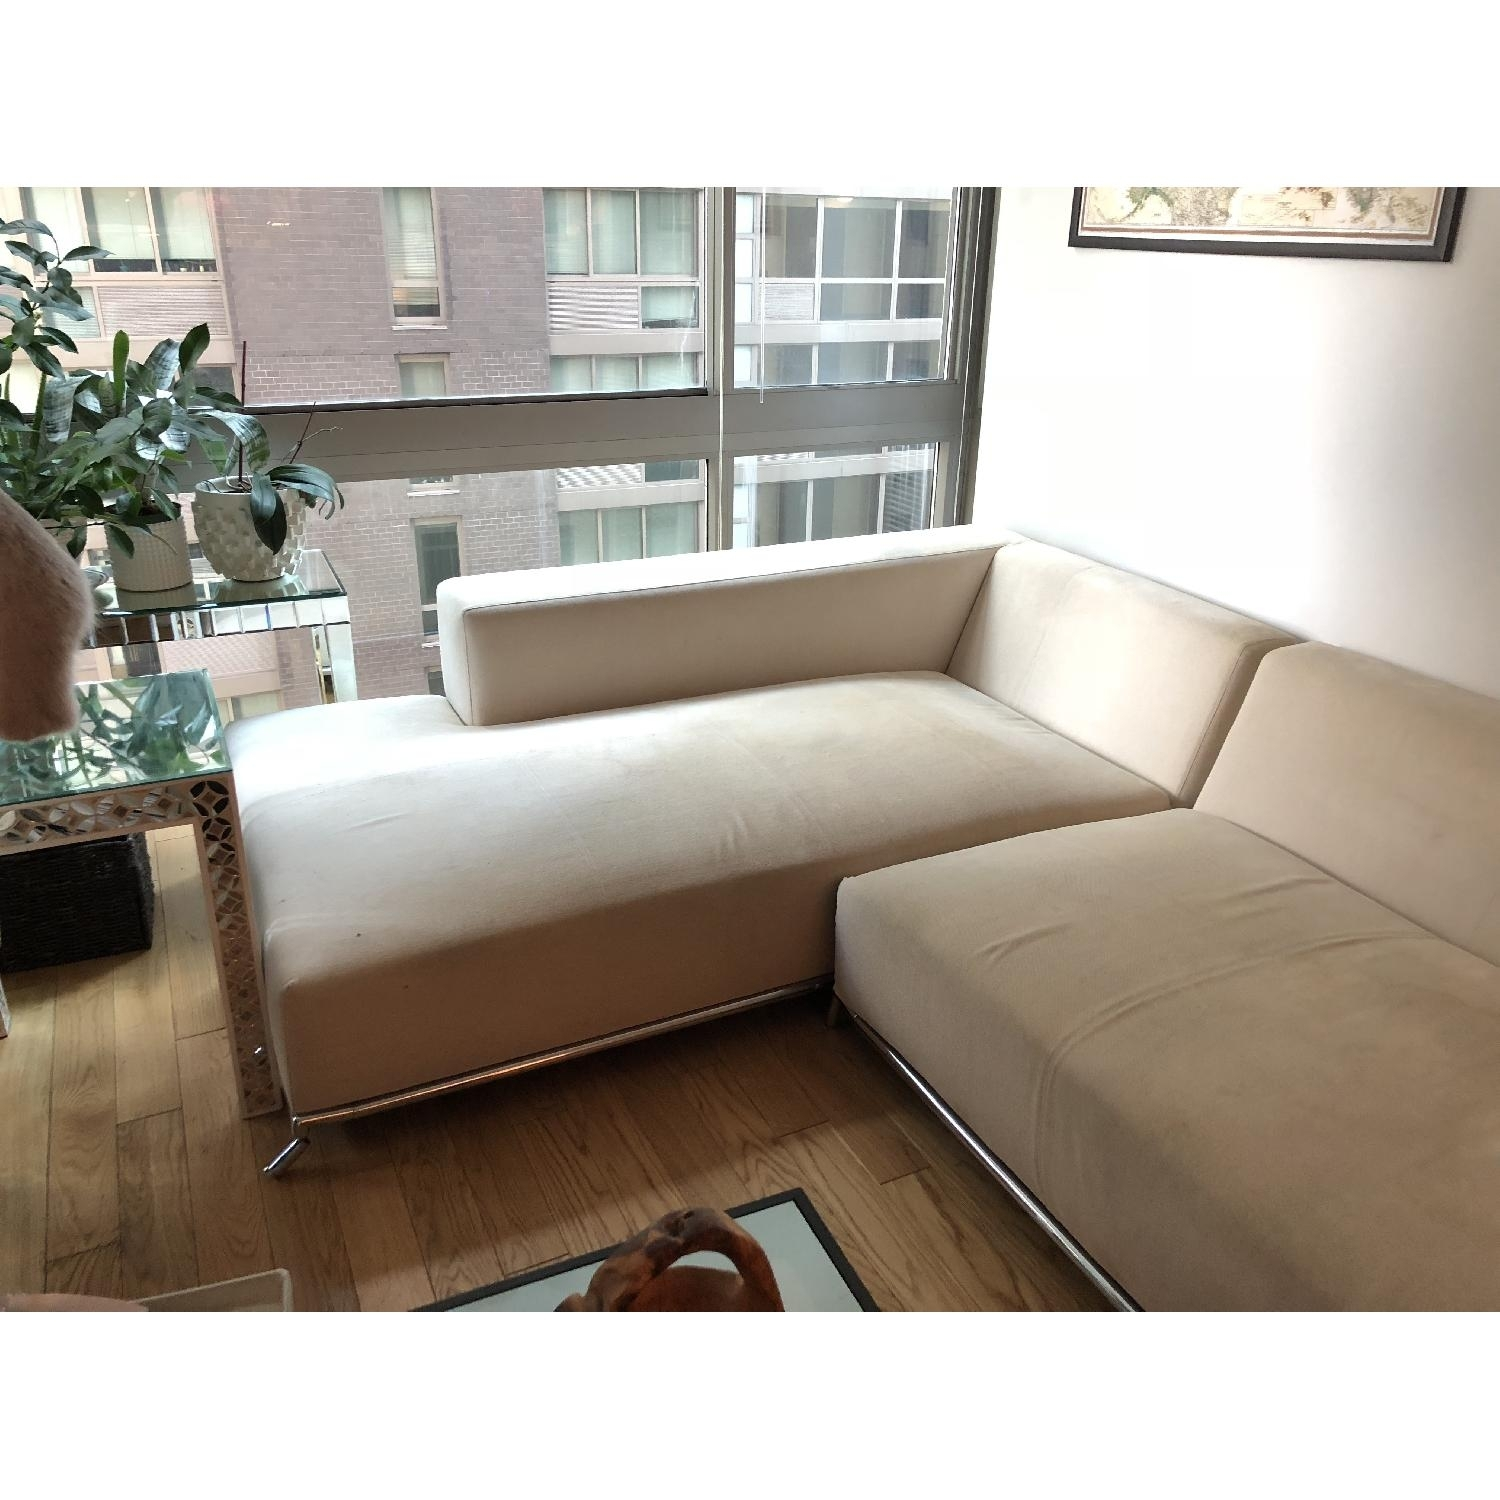 2 Piece Chaise Sectional Sofa | Baci Living Room Intended For Tenny Cognac 2 Piece Right Facing Chaise Sectionals With 2 Headrest (Gallery 10 of 30)